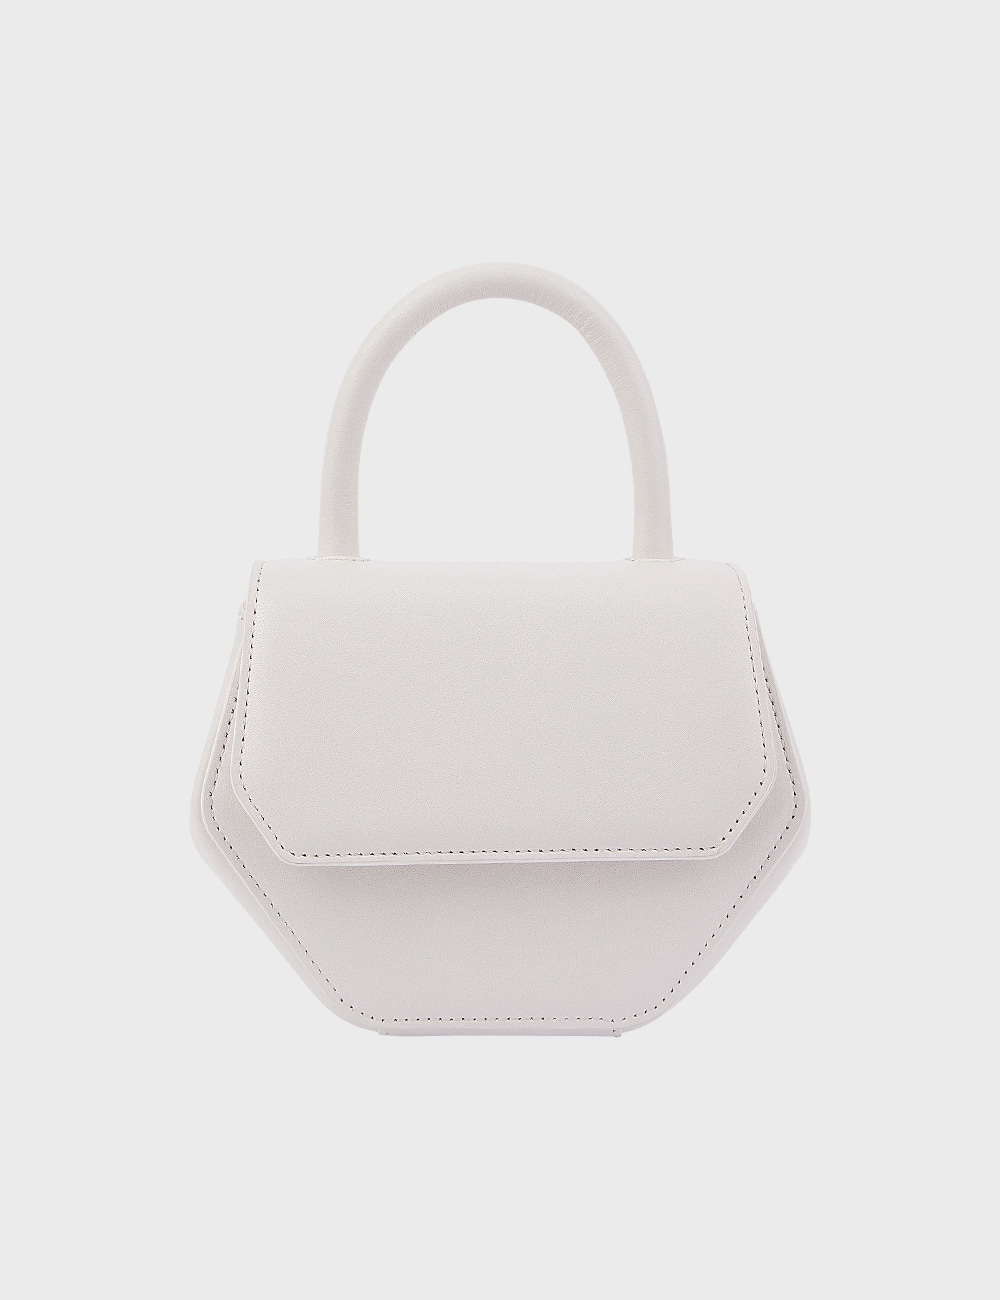 MAISON246,[유주,이영은 착용] 246 MAGOT SMALL BAG - OFF WHITE,No.246